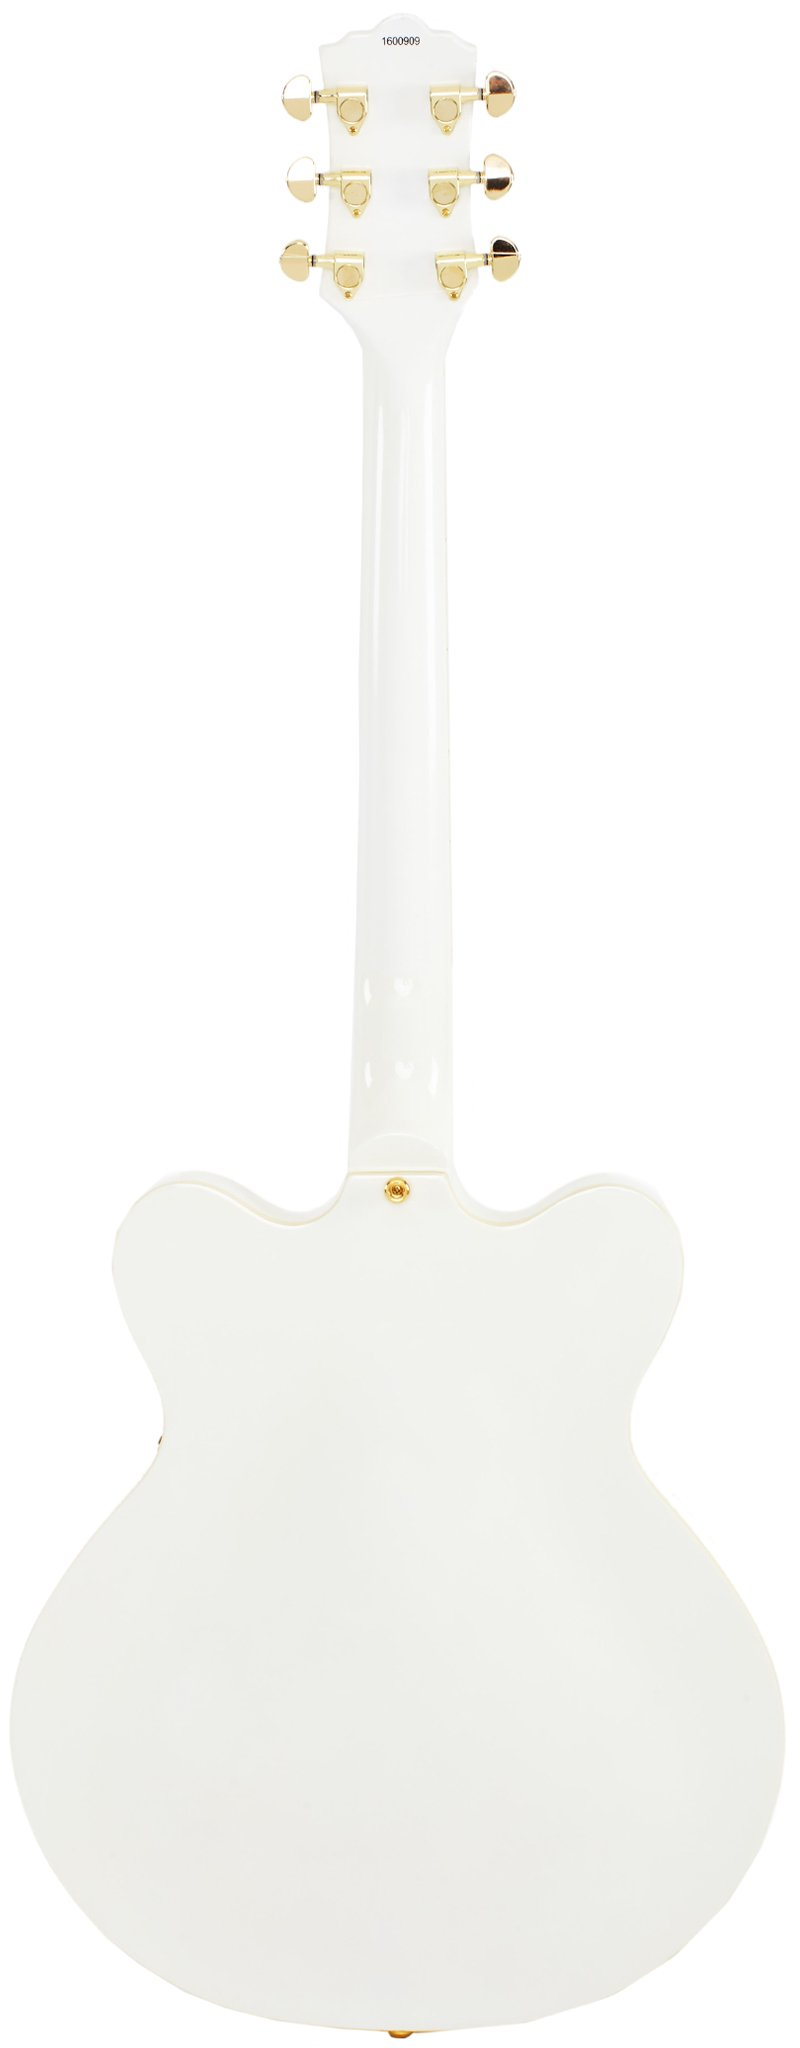 Eastwood Guitars Classic 6 White Full Back